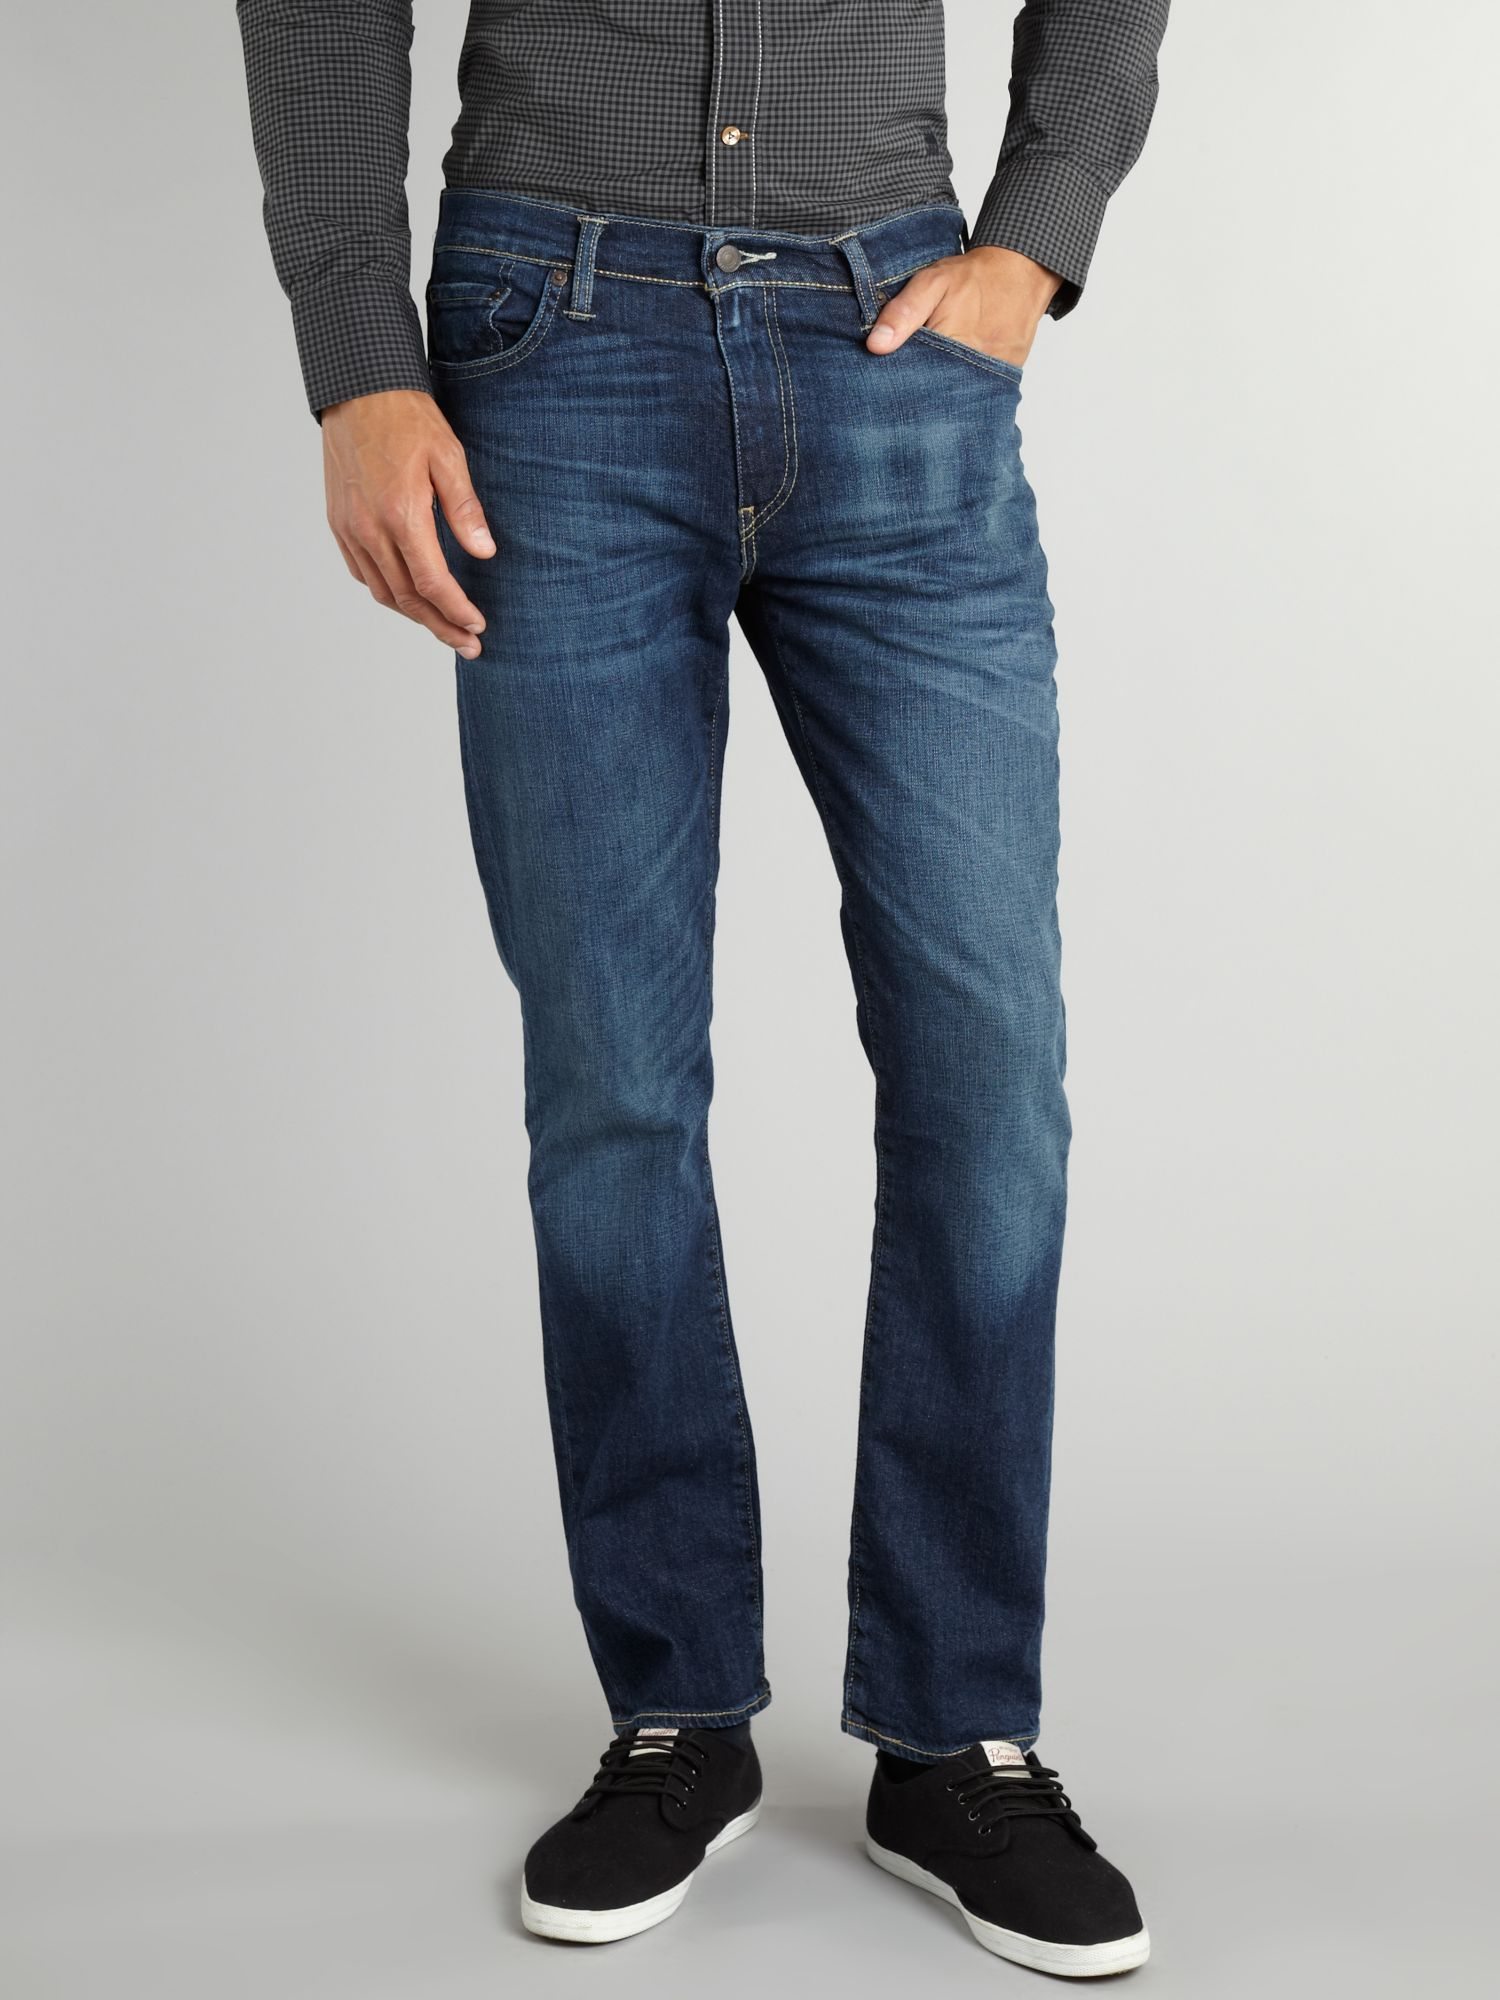 511 rain shower dark rise slim jeans